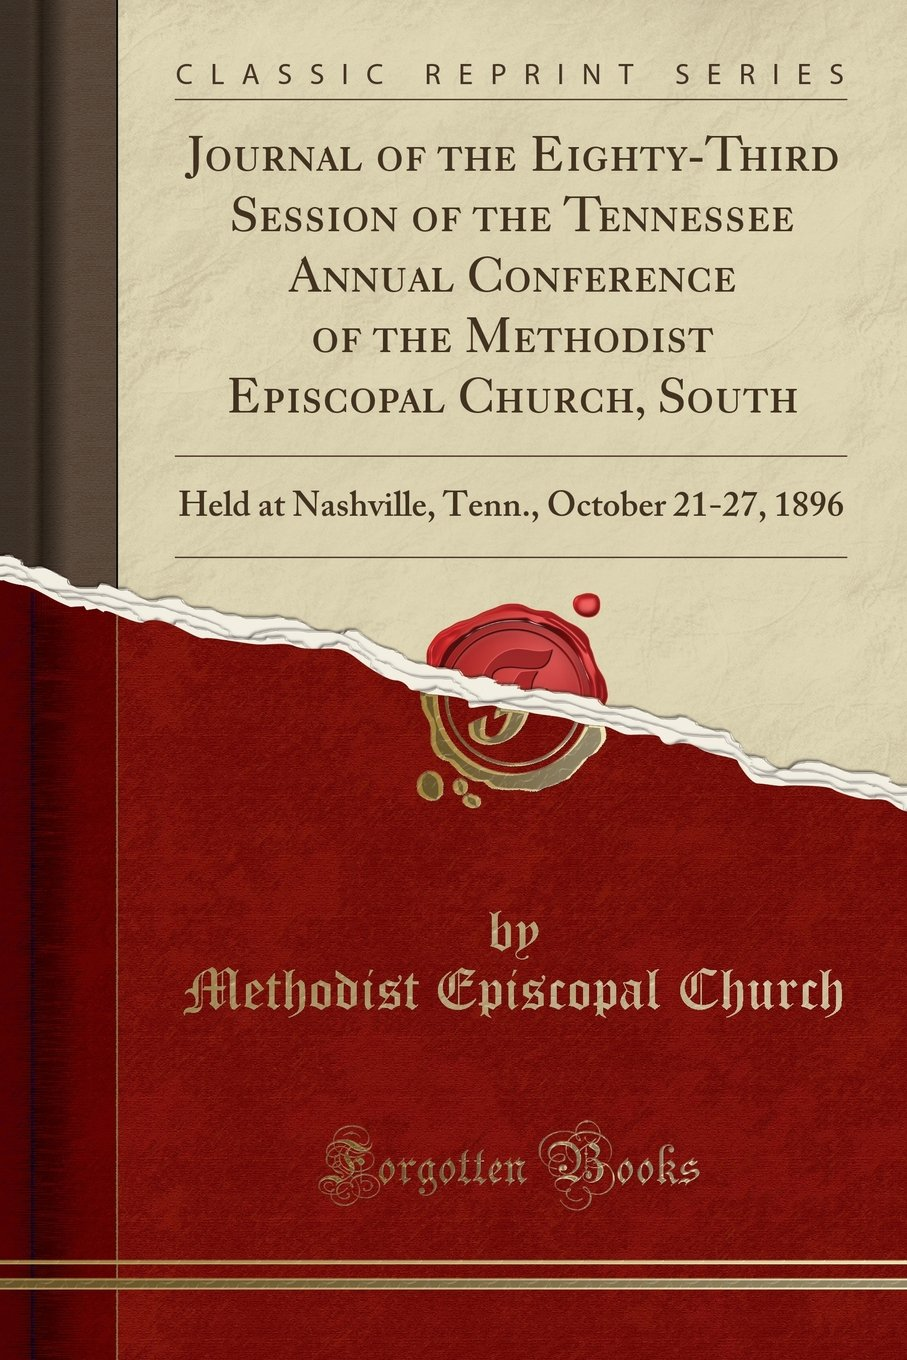 Download Journal of the Eighty-Third Session of the Tennessee Annual Conference of the Methodist Episcopal Church, South: Held at Nashville, Tenn., October 21-27, 1896 (Classic Reprint) pdf